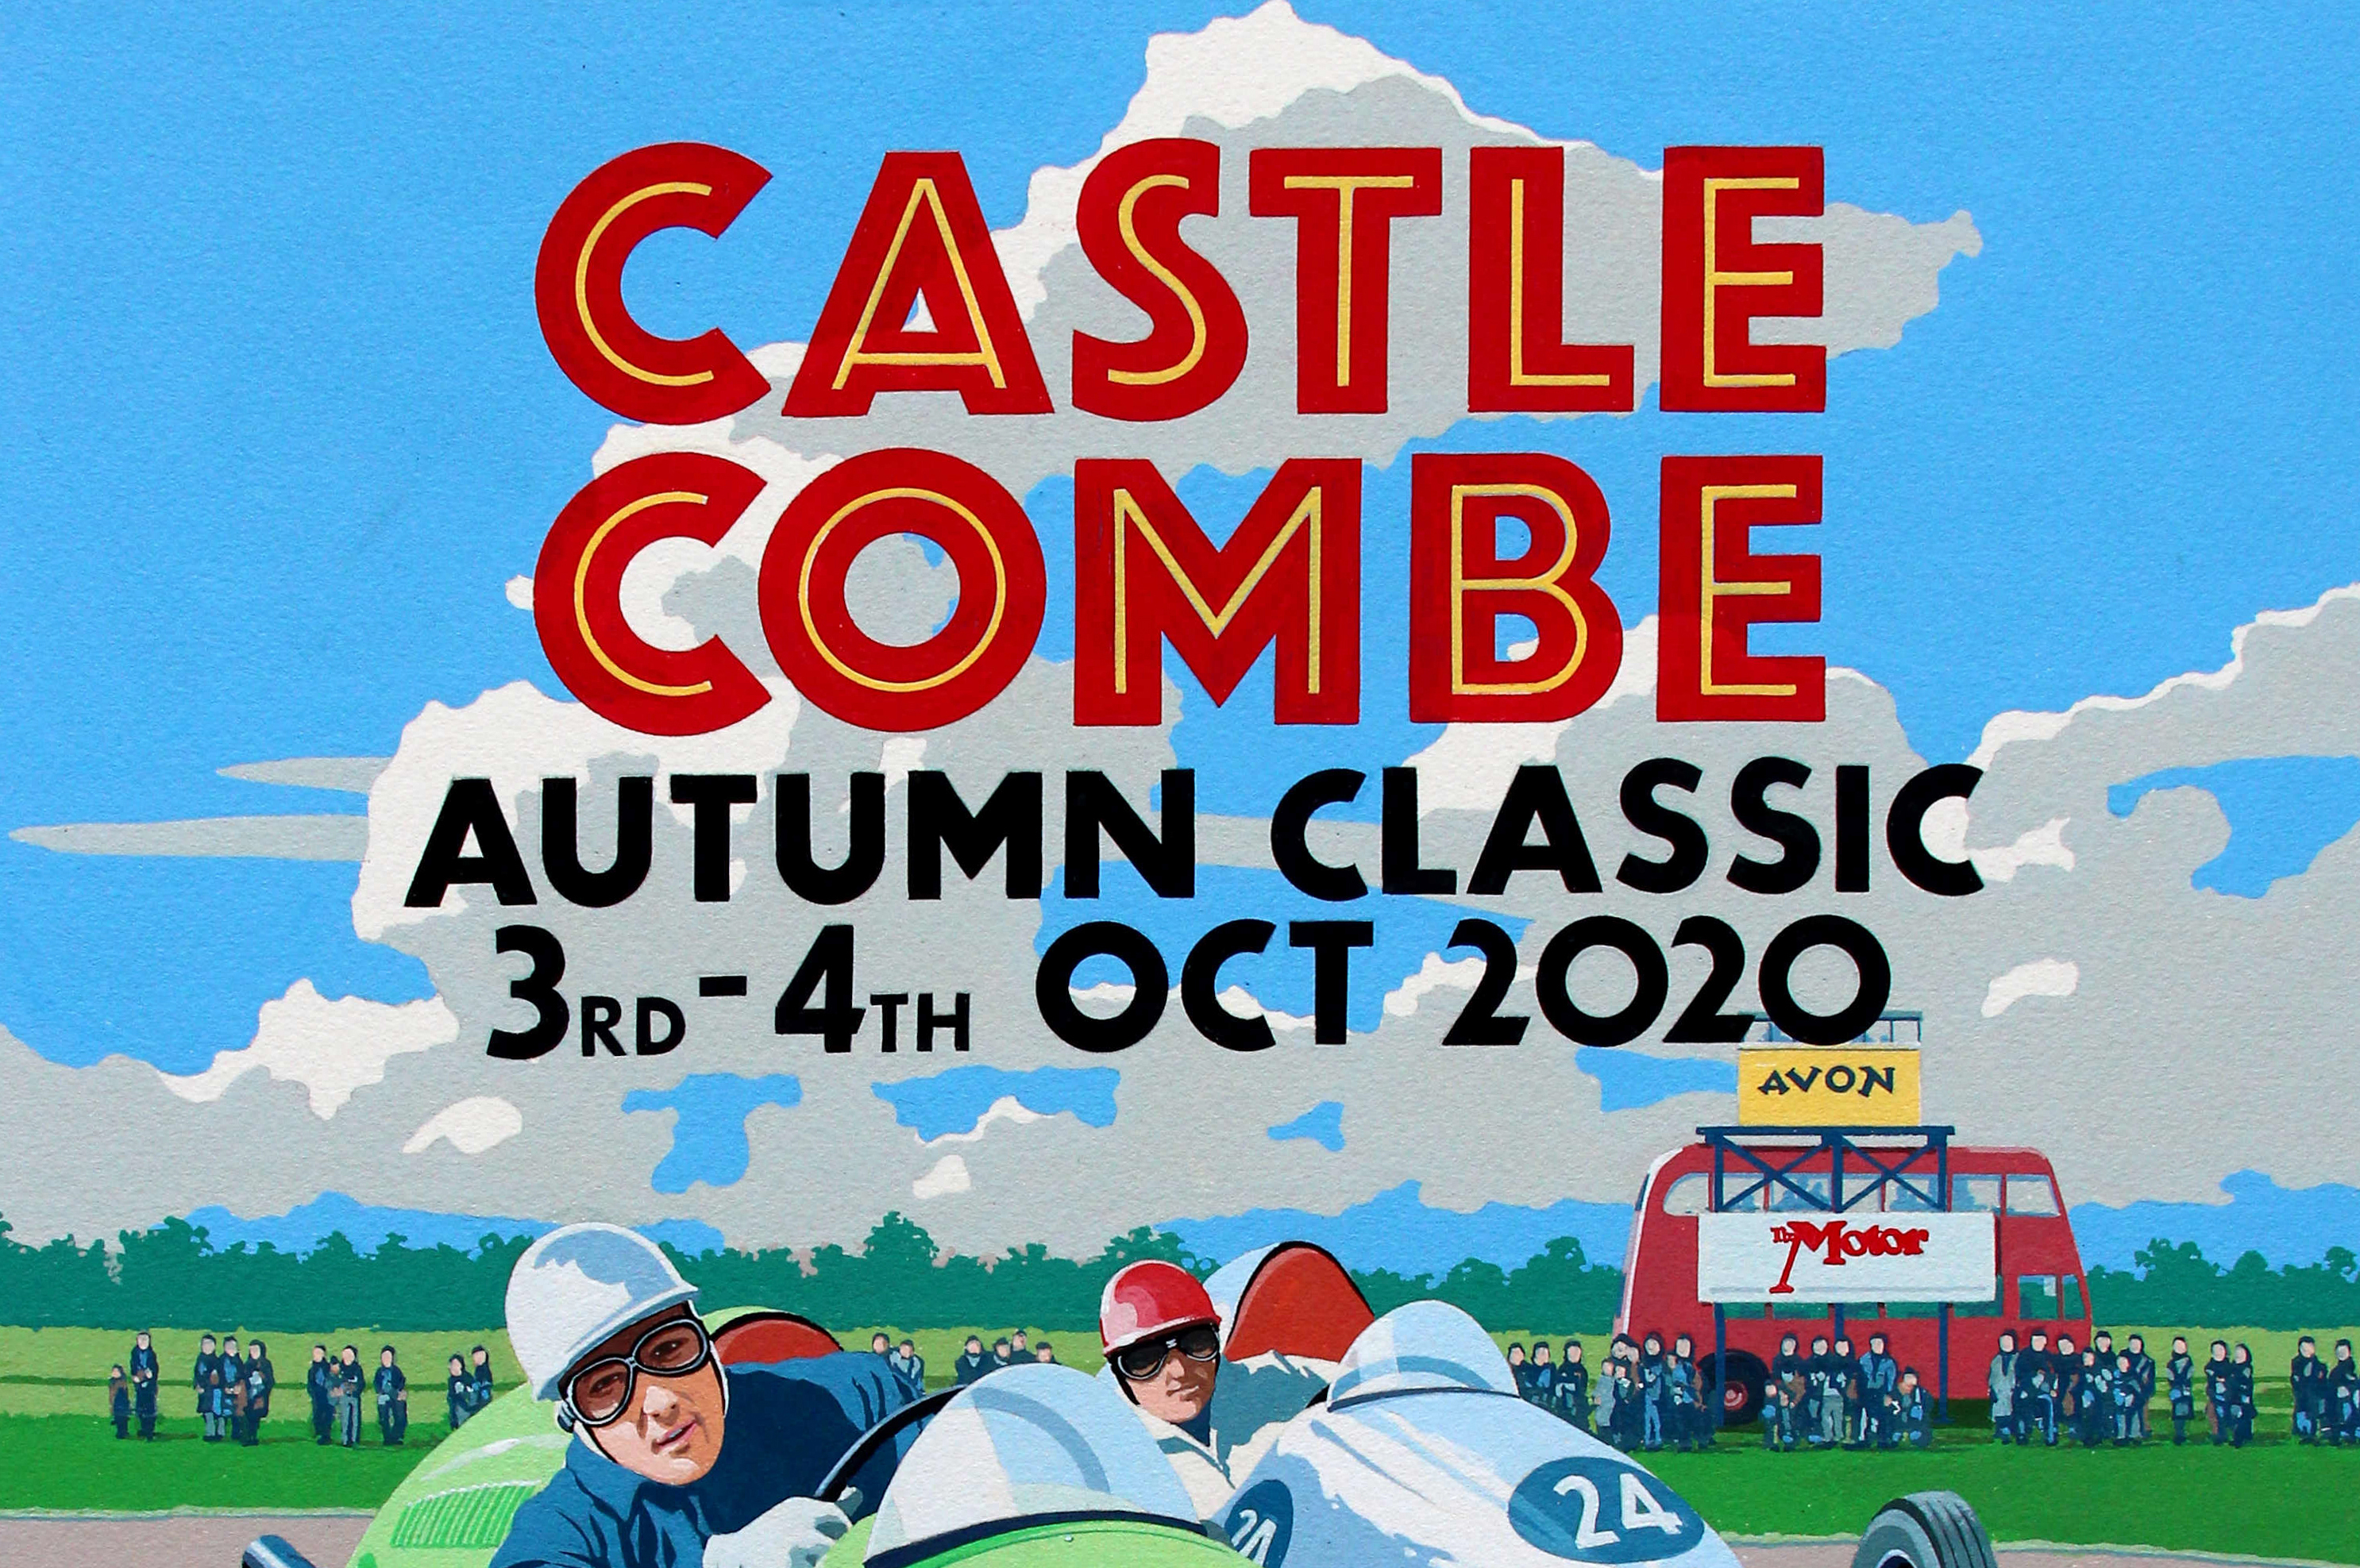 CASTLE COMBE AUTUMN CLASSIC RACE WEEKEND – DAY VISITOR UPDATE